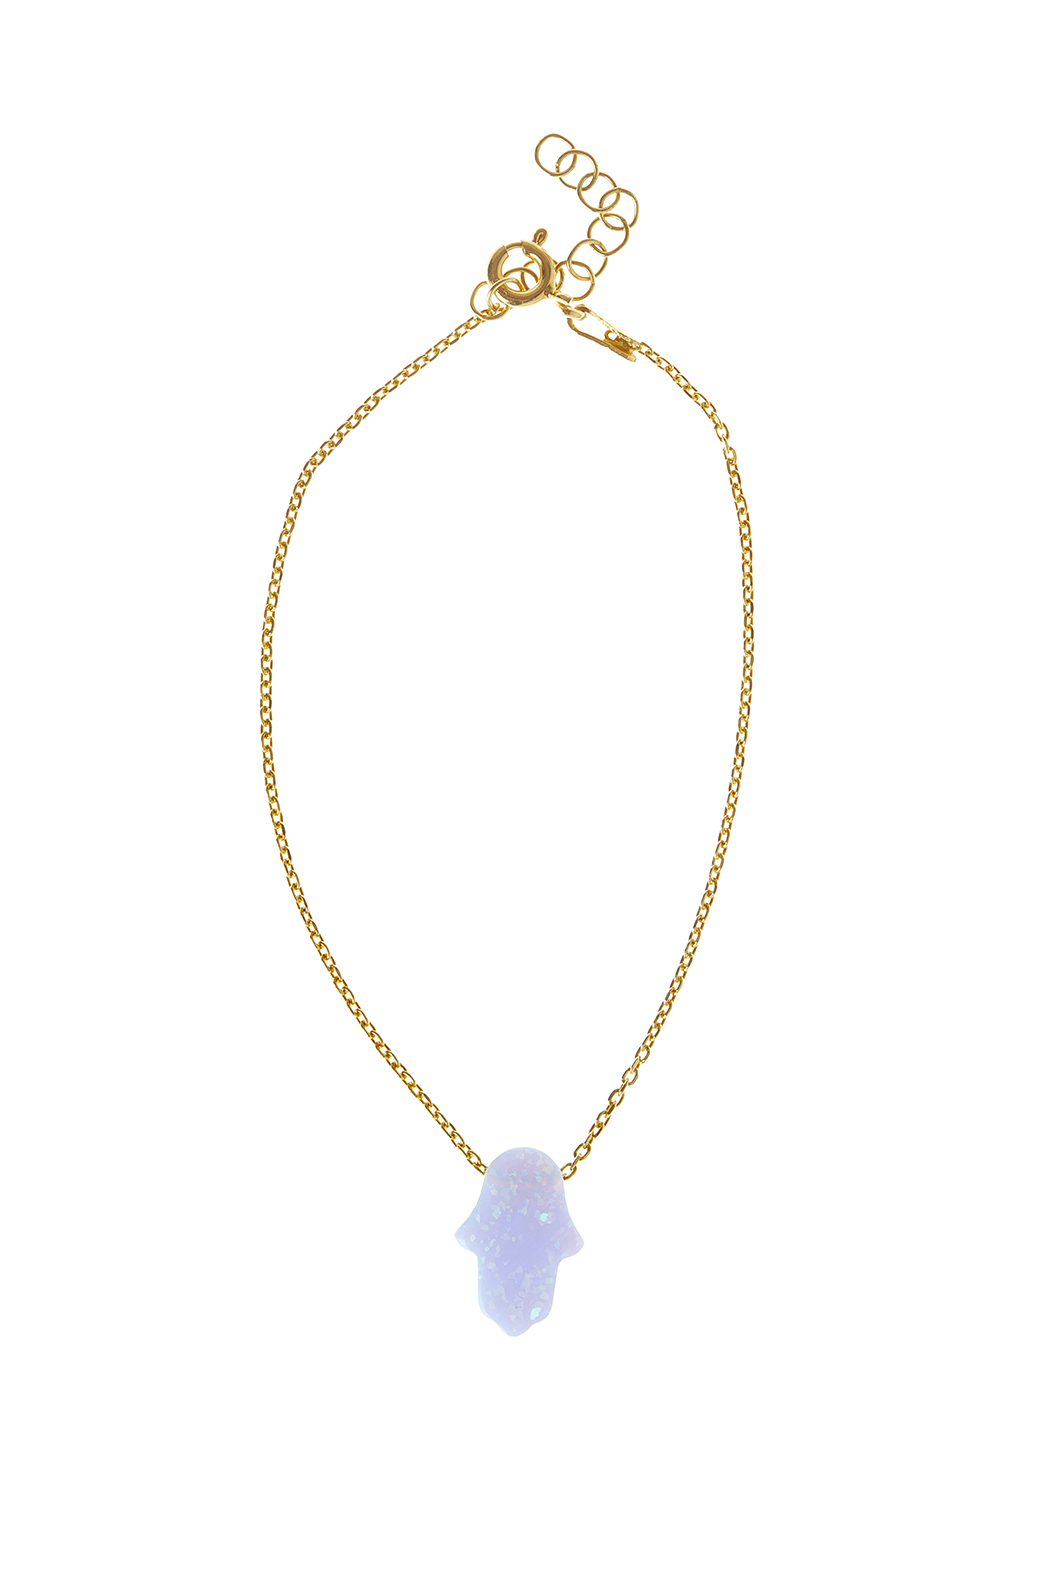 85160879082a5 Lets Accessorize Opal Hamsa Bracelet from New York by Let's ...